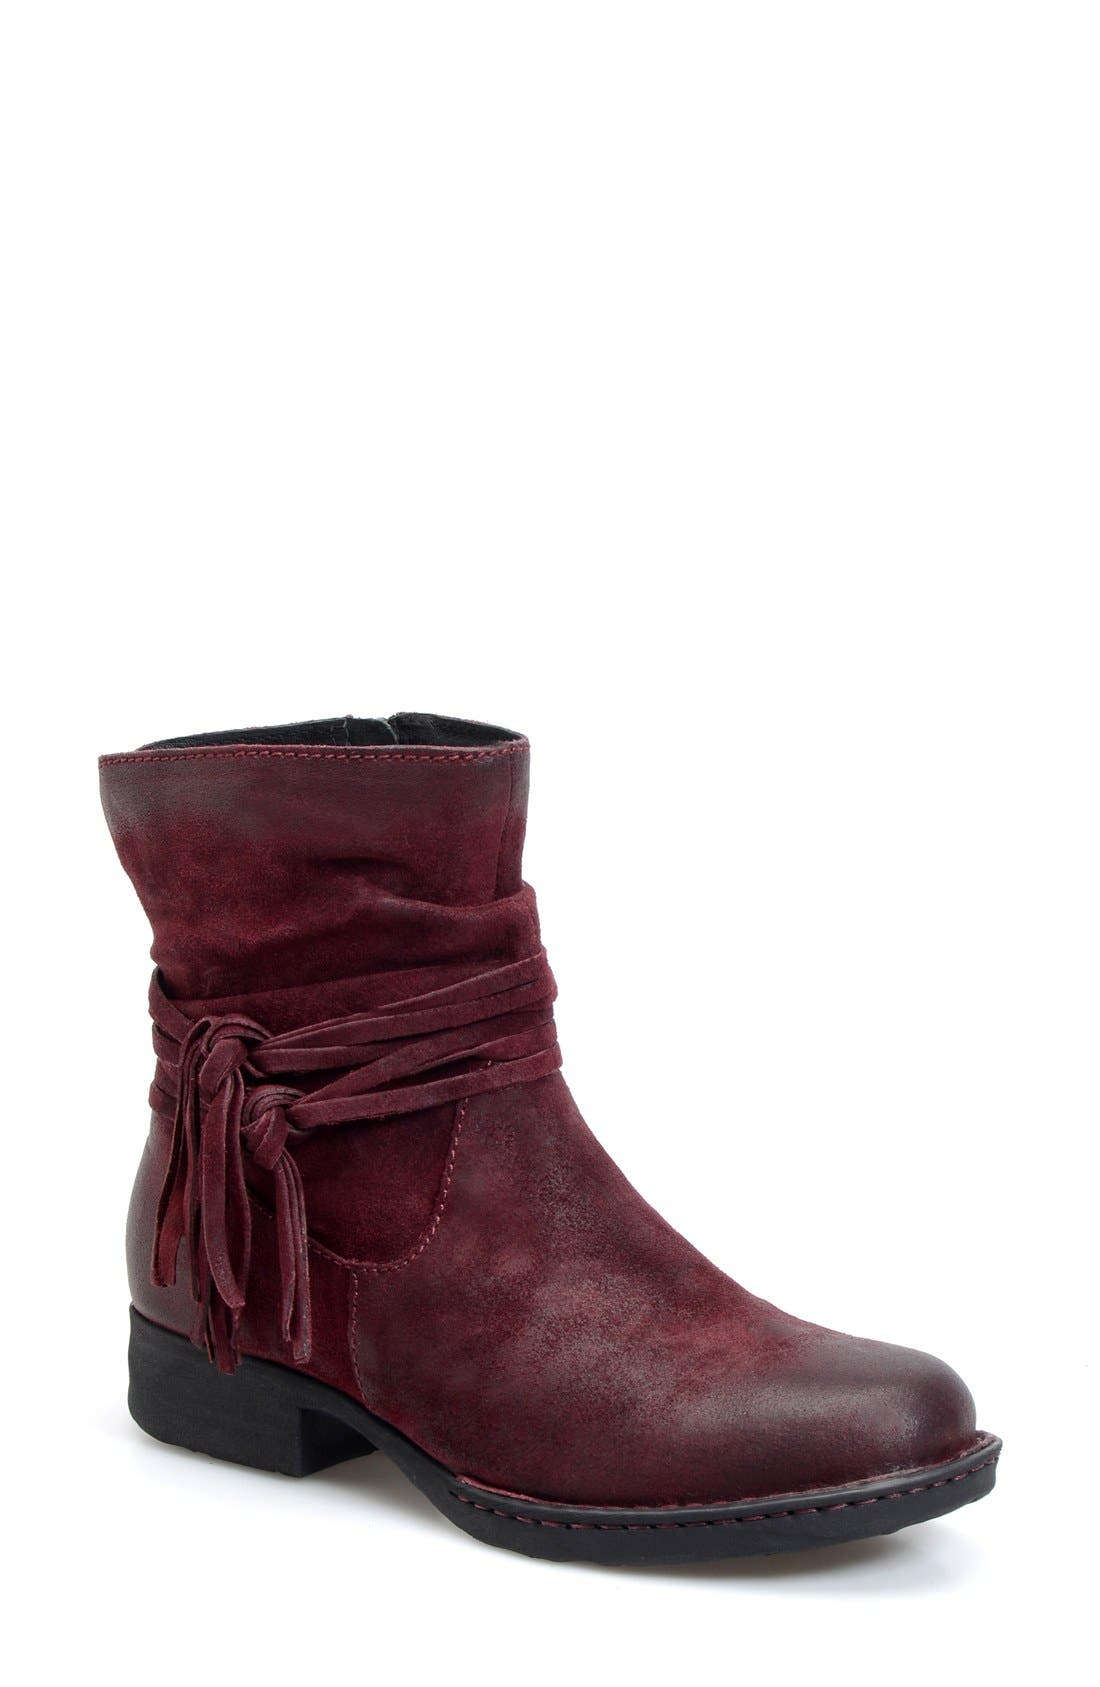 'Cross' Bootie,                             Main thumbnail 1, color,                             Amarena Distressed Leather